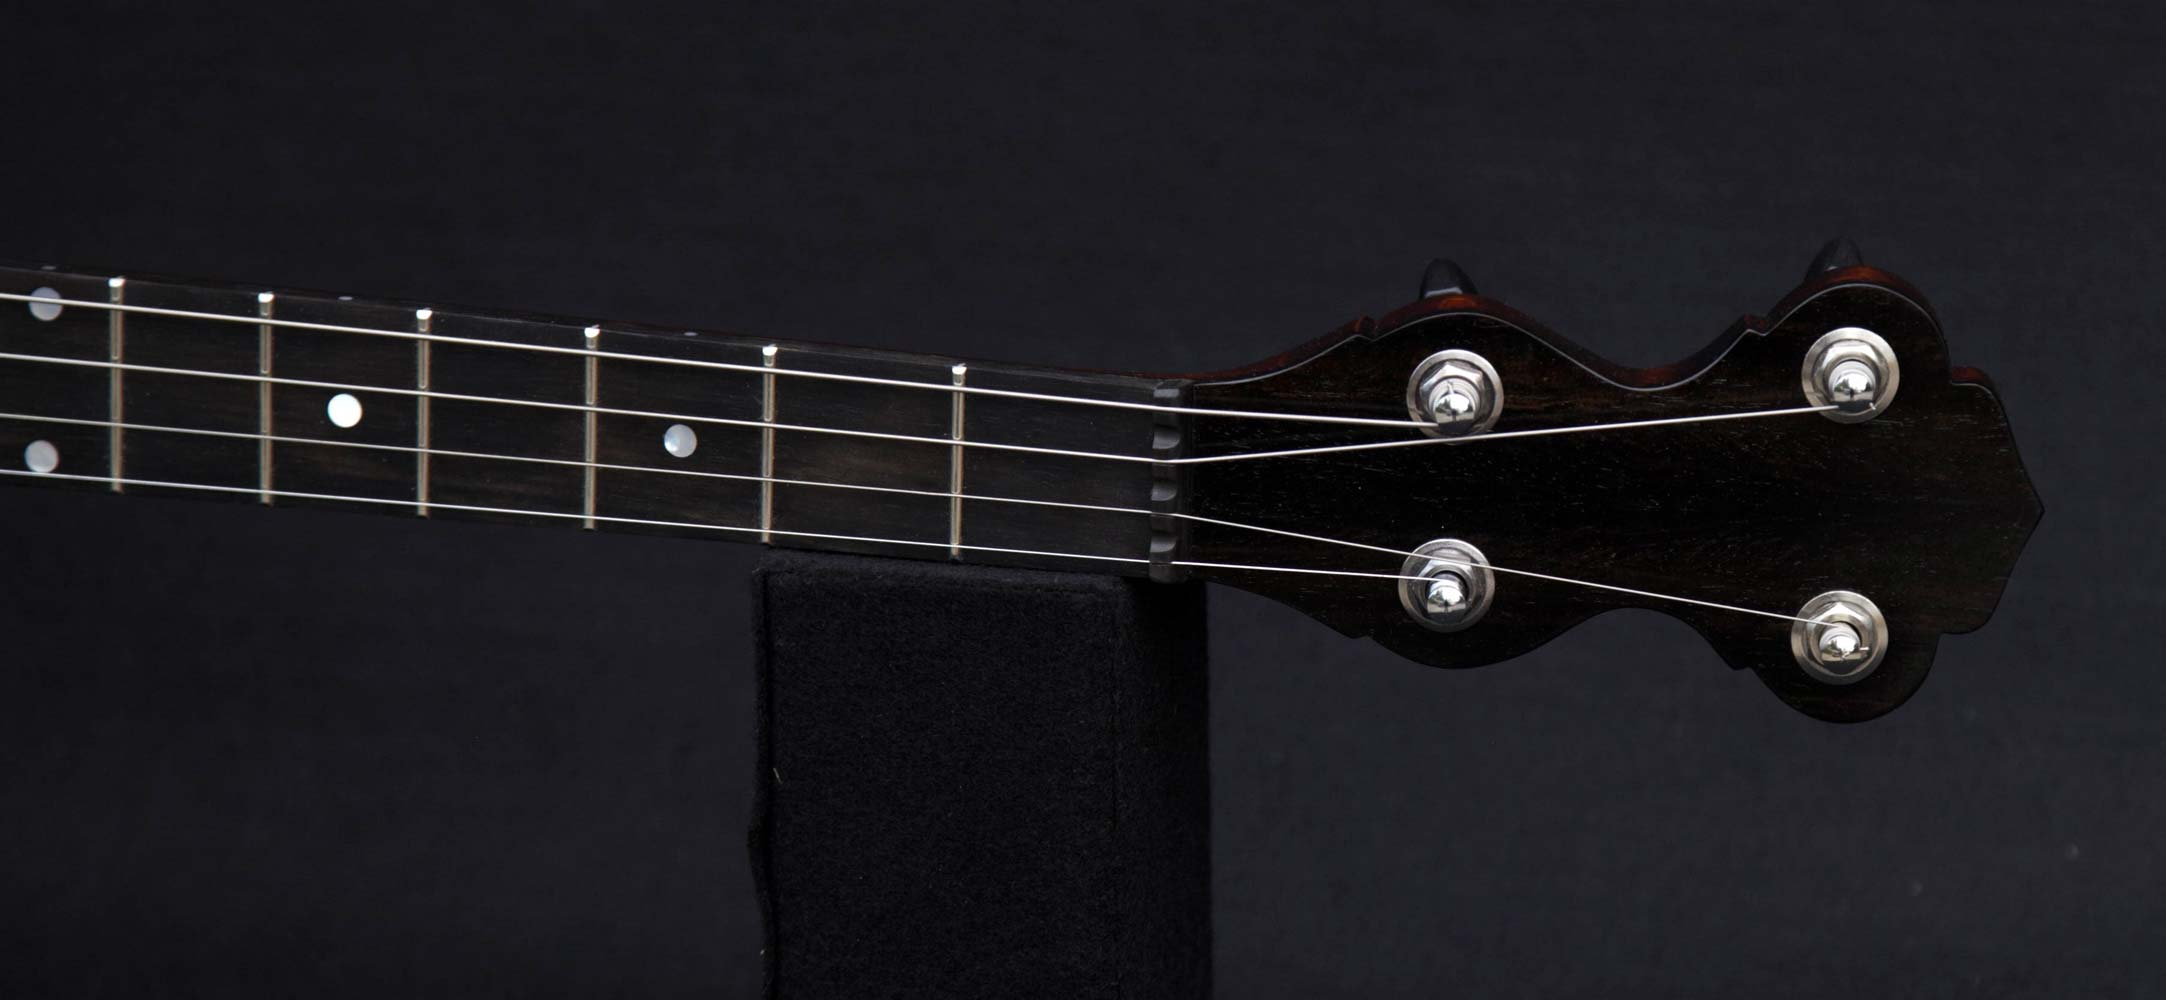 Deep Rim 19 Fret Tenor neck